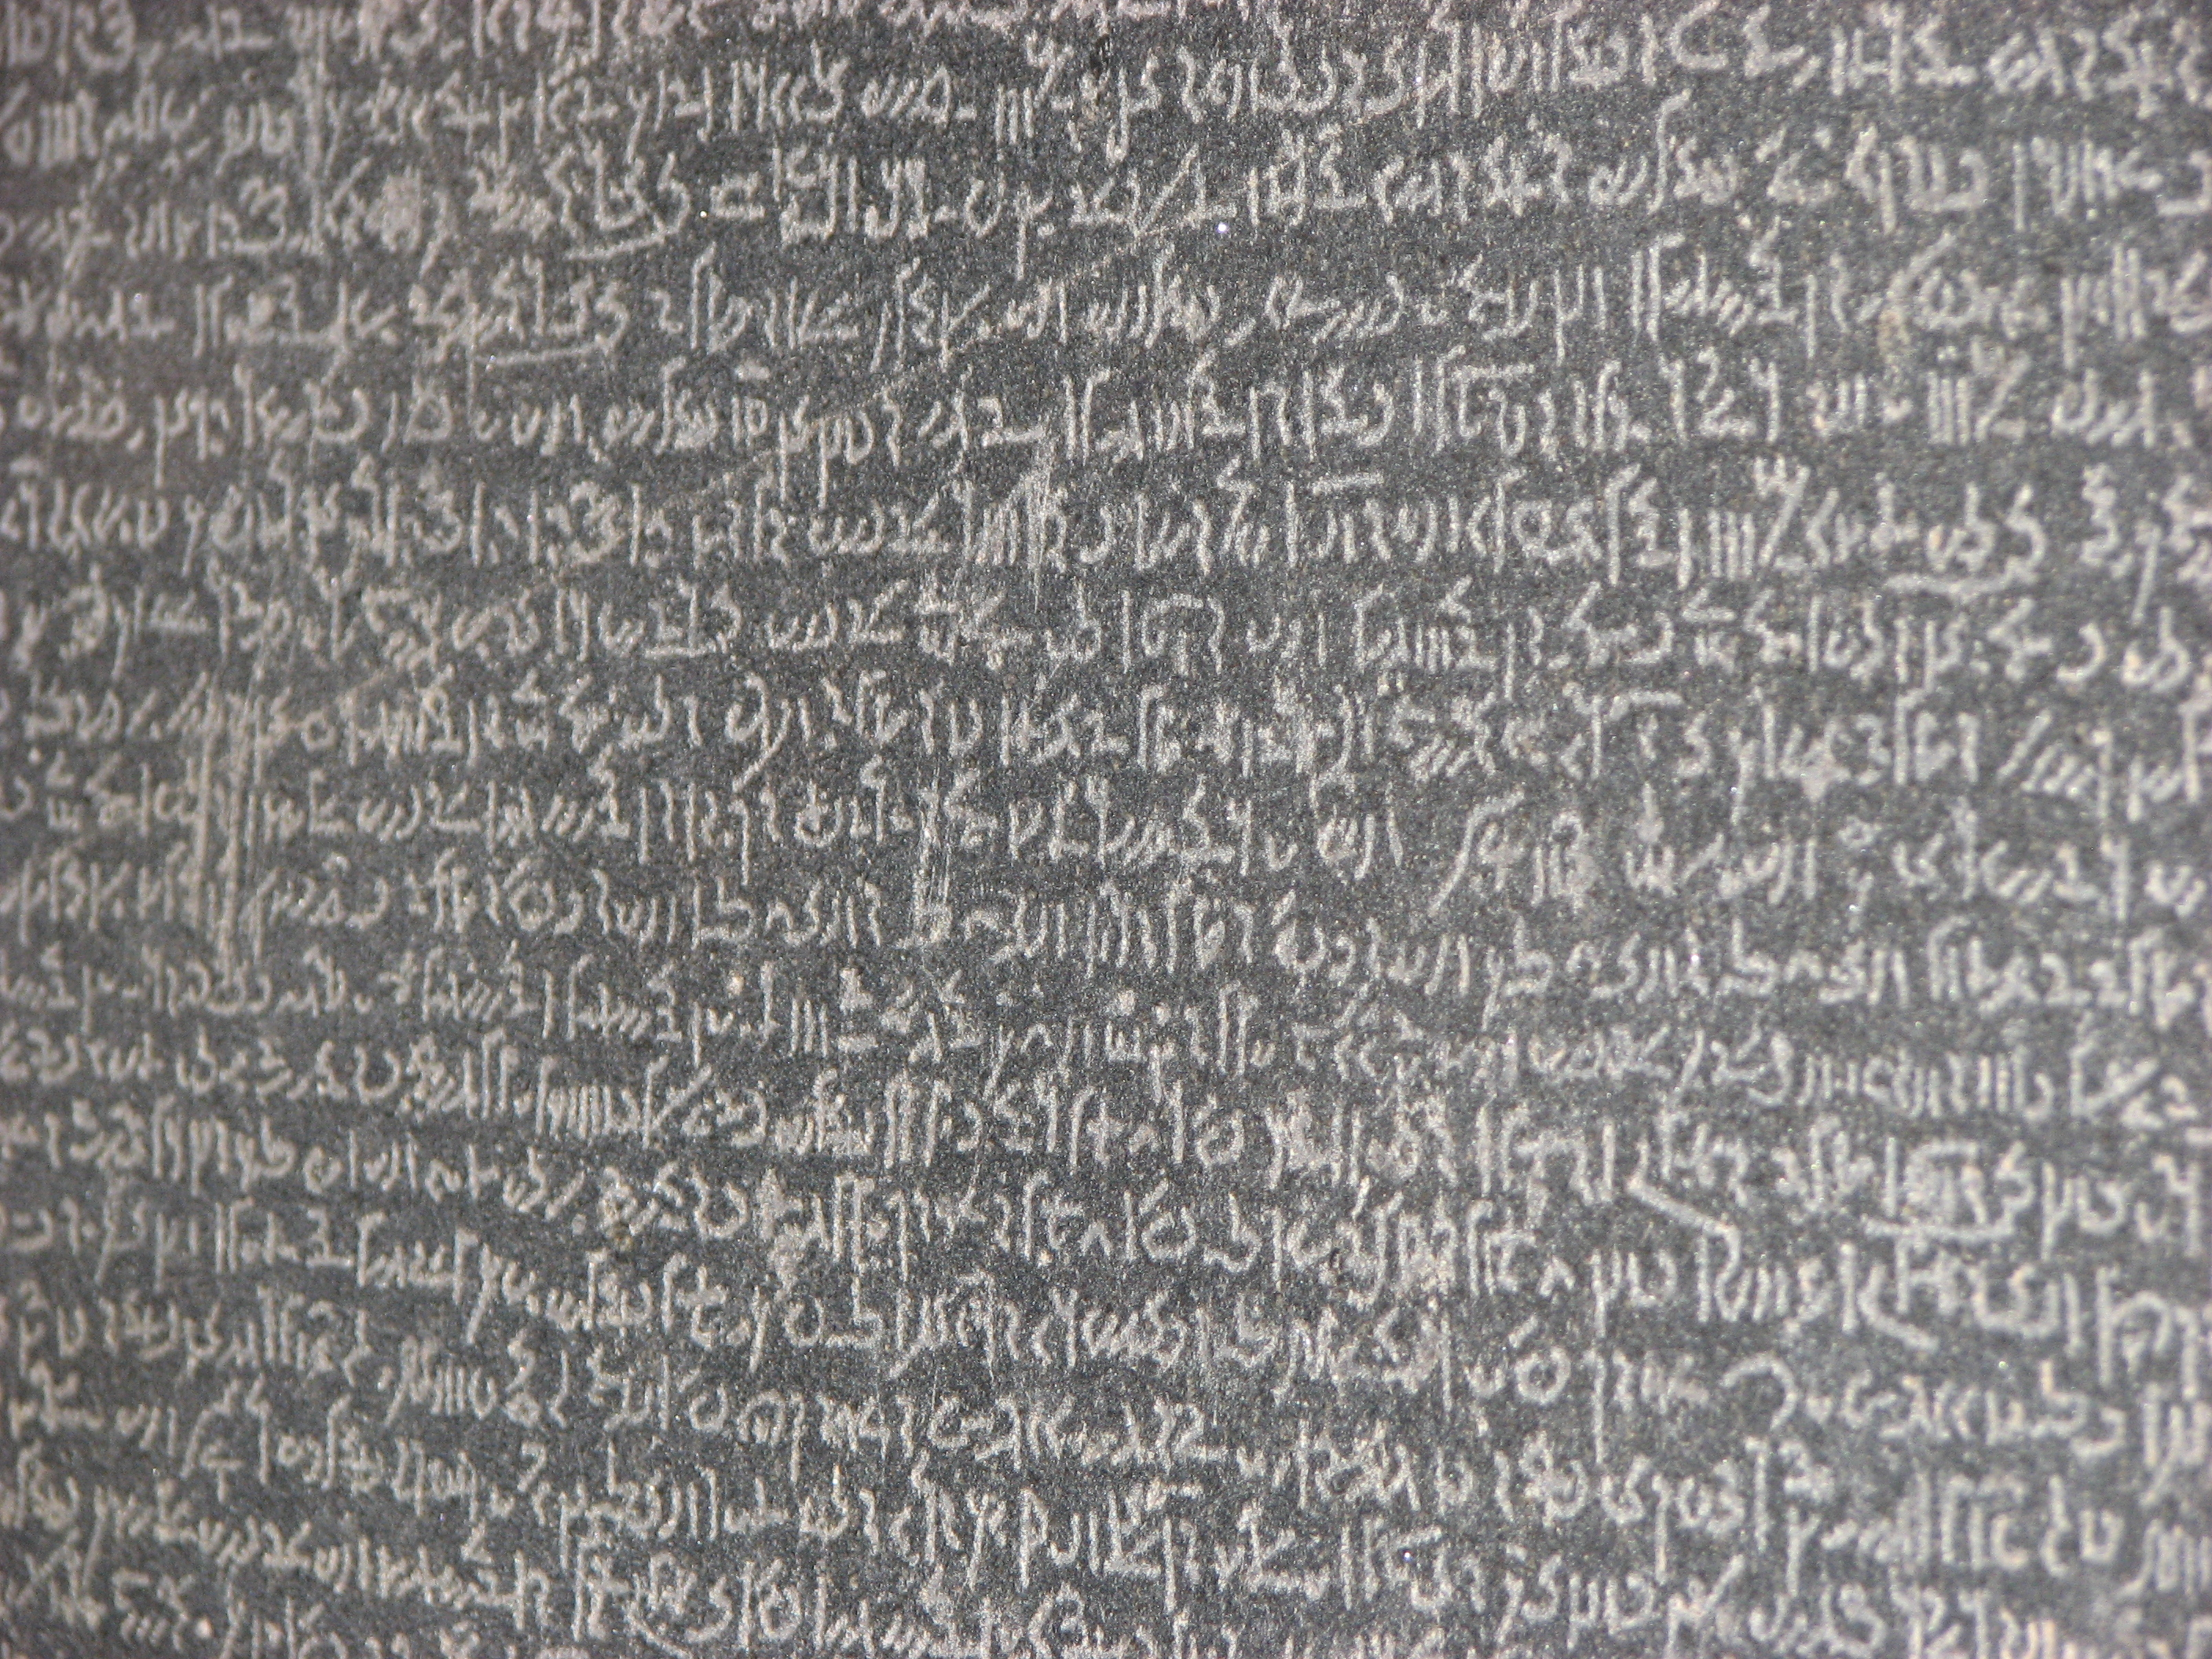 essay rosetta stone Free college essay the rosetta stone introduction the rosetta stone the key to the egyptians i chose the rosetta stone because of its mysteries and unsolved.